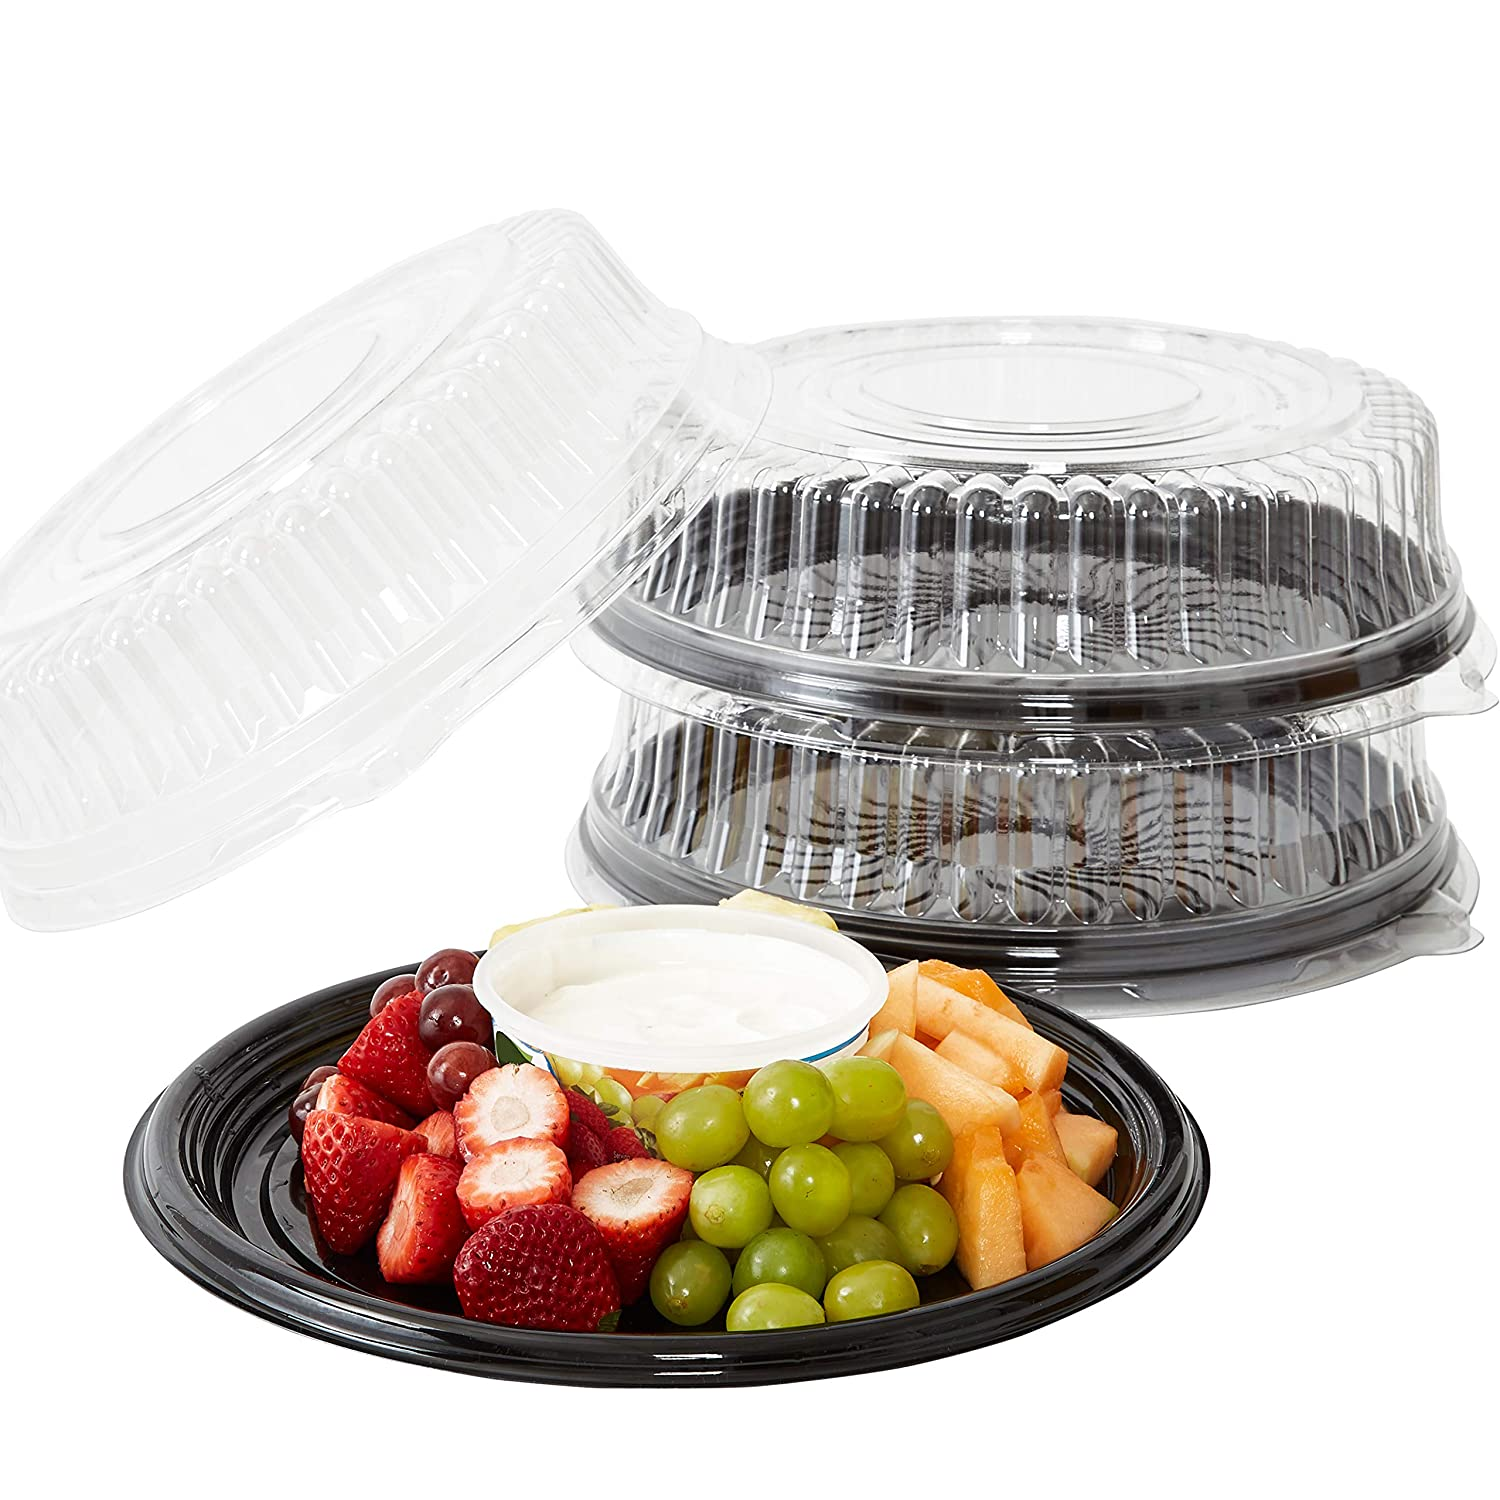 Heavy Duty, Recyclable 12 in. Serving Tray and Lid 3pk. Large, Black Plastic Party Platters with Clear Lids. Elegant Round Banquet or Catering Trays for Serving Appetizers, Sandwich and Veggie Plates